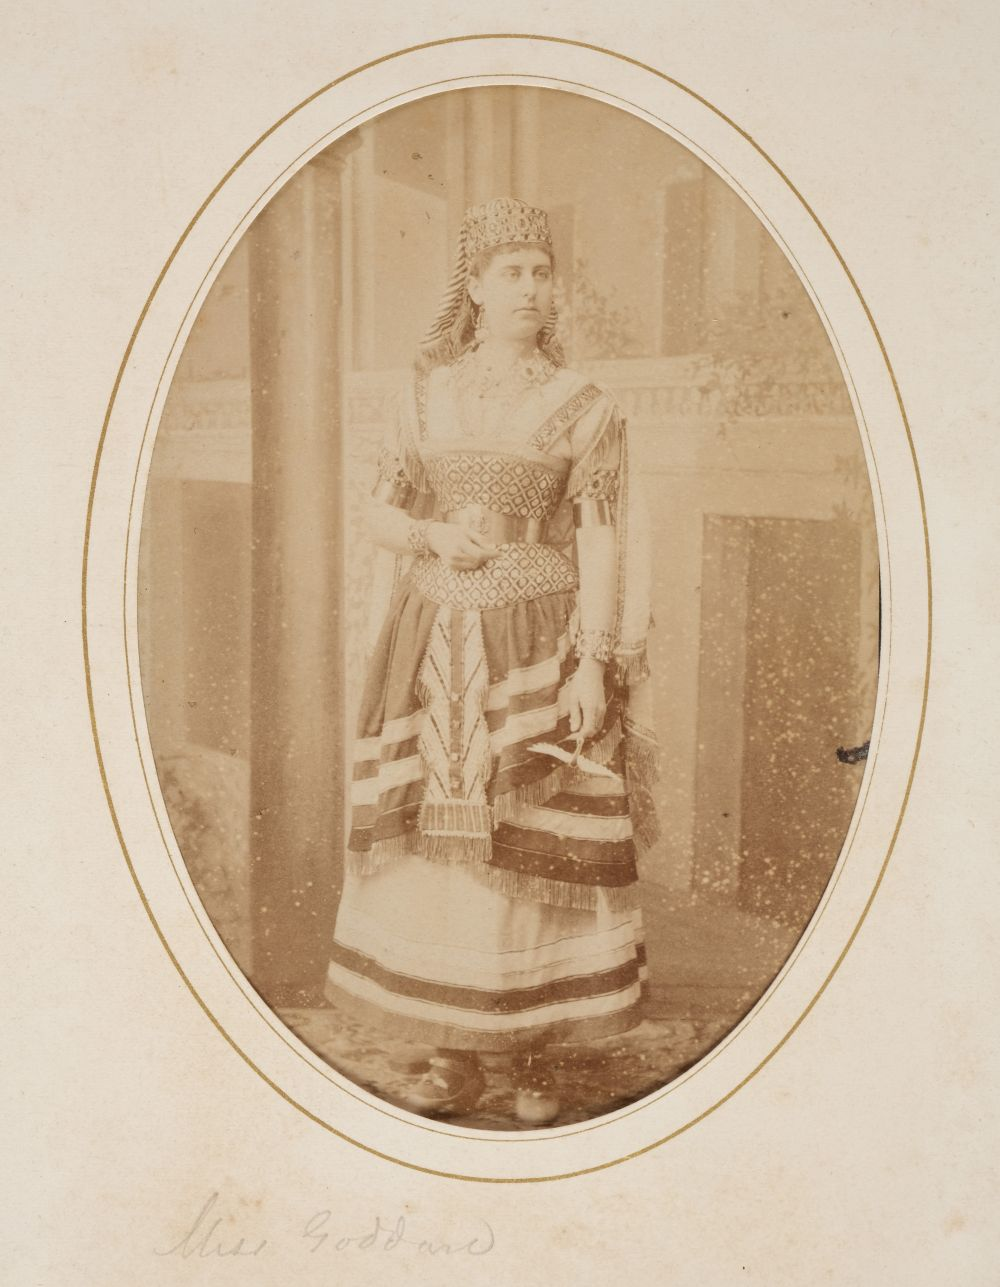 * Cartes de visite. A group of 3 albums of cartes de visite and cabinet cards - Image 19 of 26